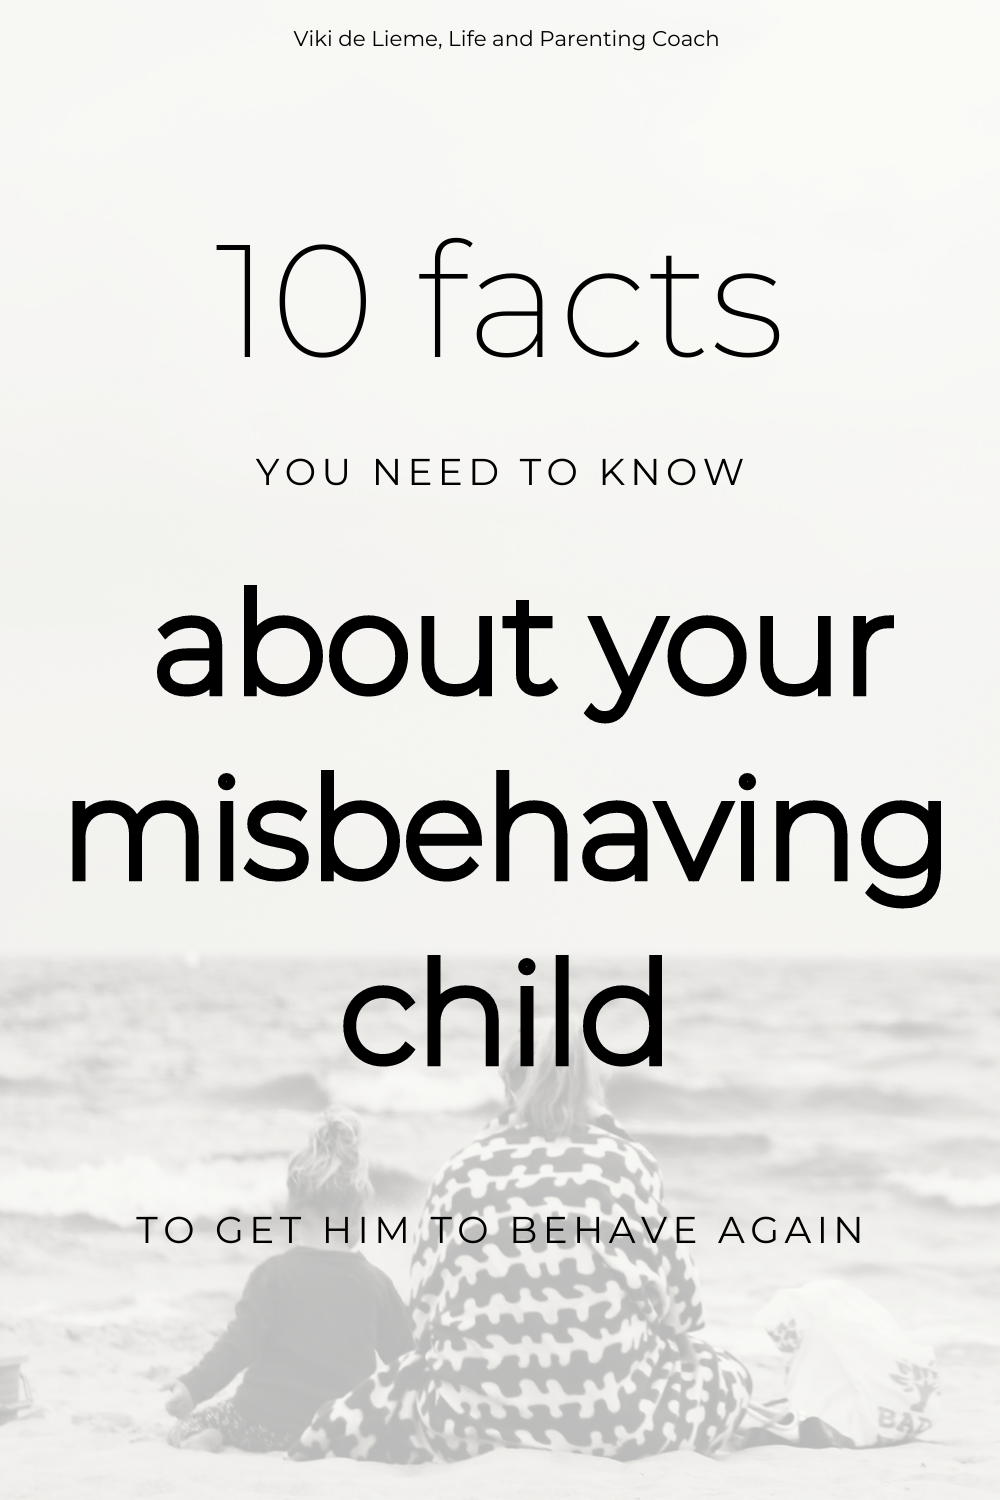 When push comes to shove, and it looks like our children are so out of line that there's nothing we can do to get them back on track, we usually go harder, and harsher on them. This make everything much worse. Here are 10 facts to consider before resuming to child discipline. #childdiscipline #misbehavingchild #children'sneeds #whatdochildrenneed #parenting #positiveparenting #positivepsychology #peacefulparenting #parentingfromtheheart #parenting101 #parentingtipsandtricks